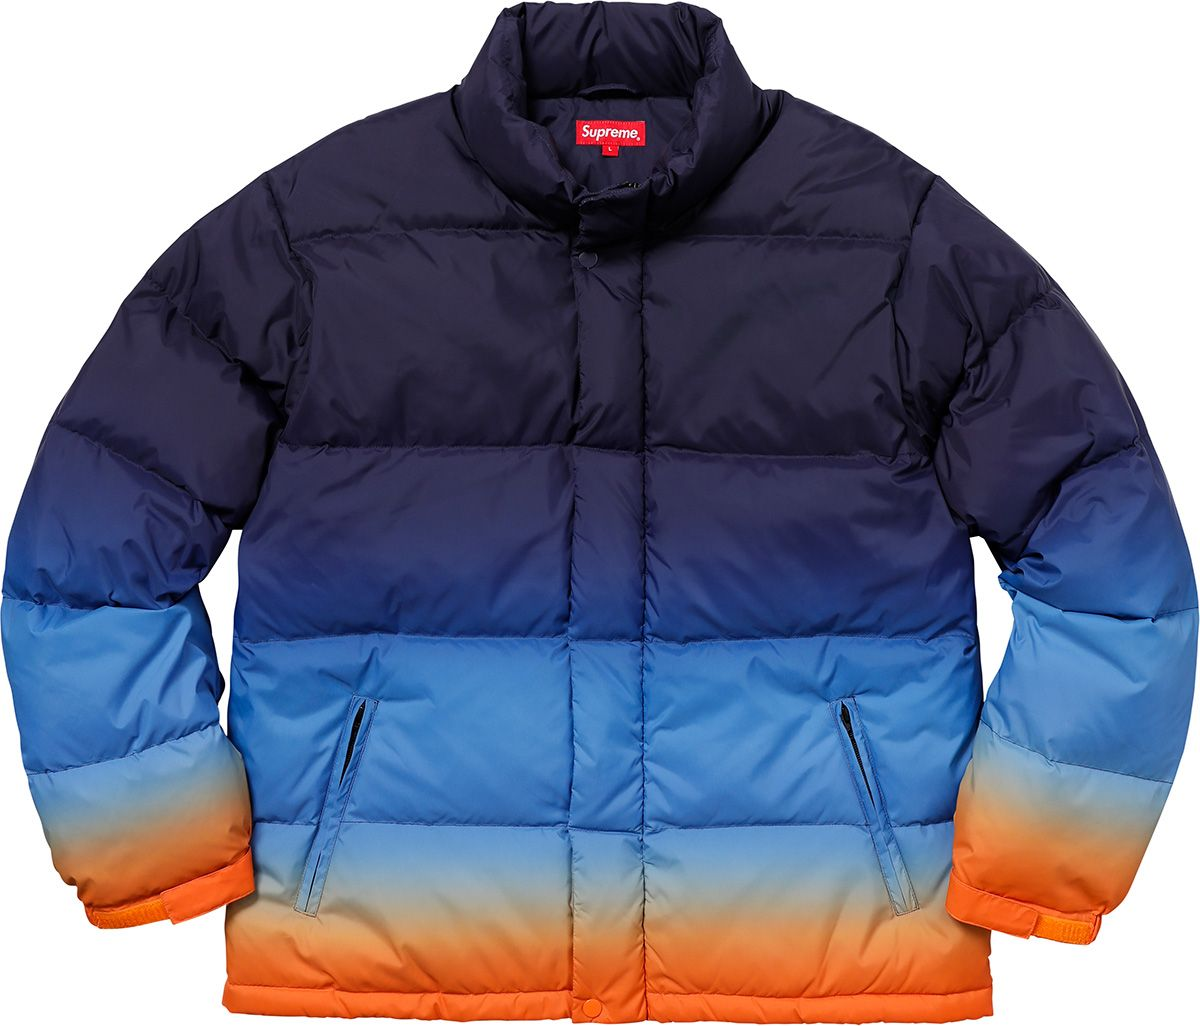 e008efb75 Supreme Gradient Puffy Jacket | FASHION - MEN | Puffy jacket, Blue ...